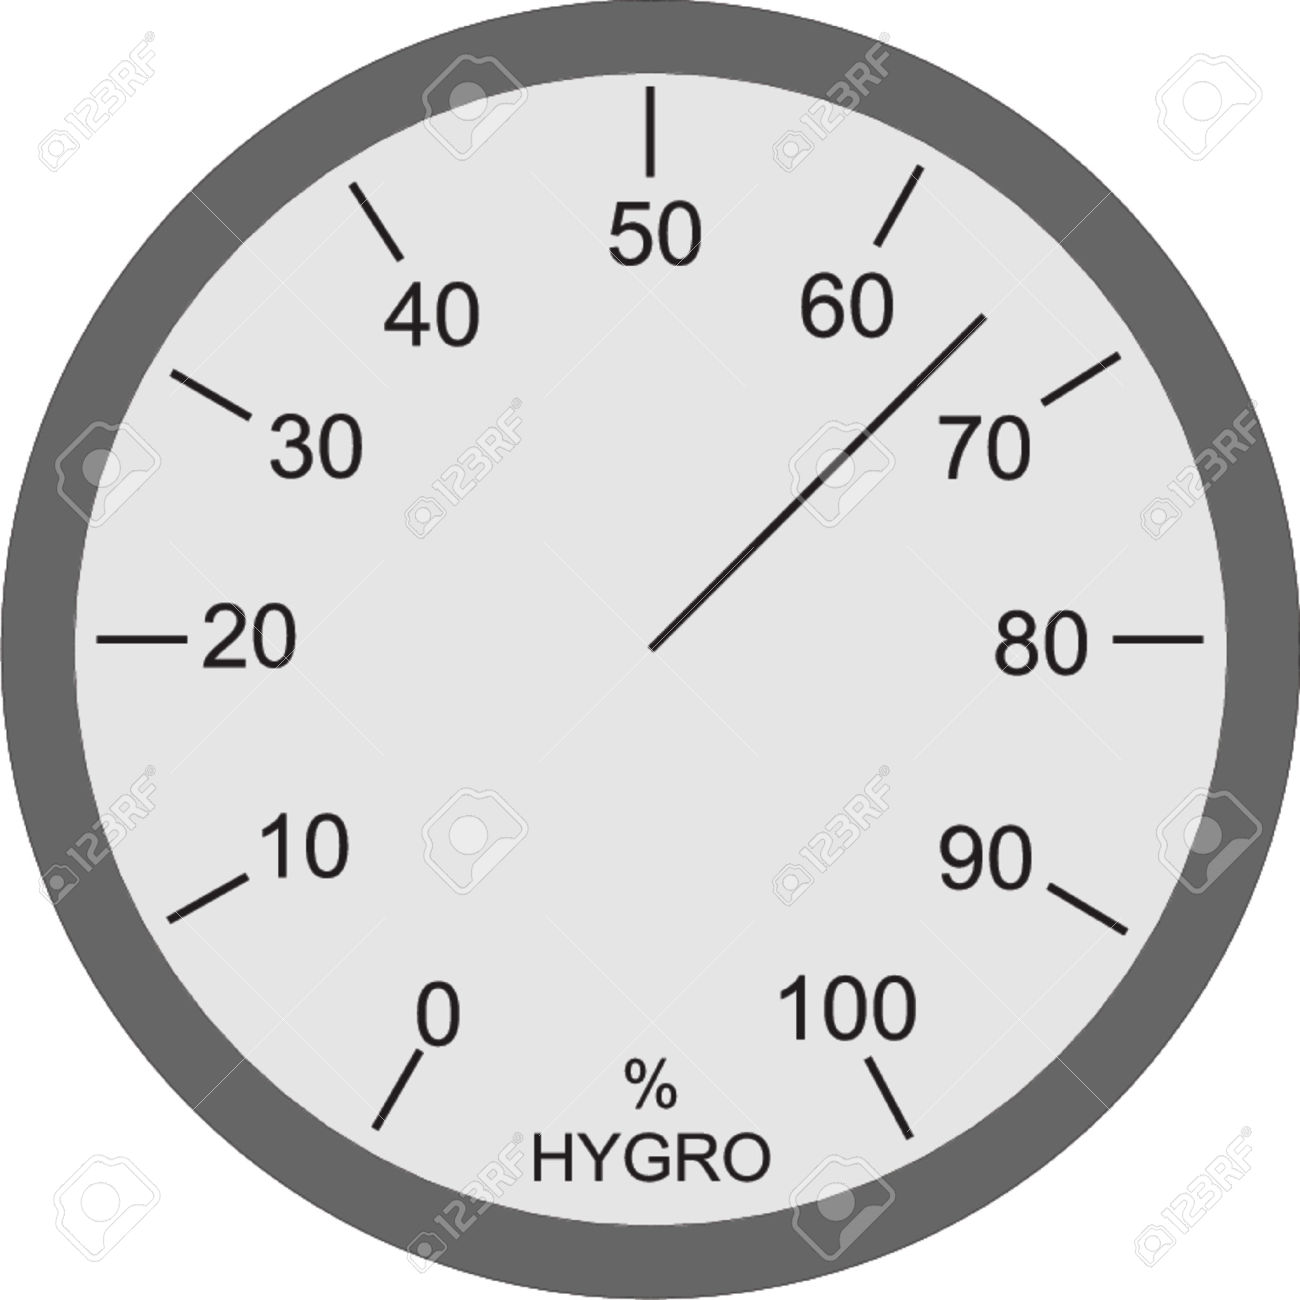 Hygrometer Royalty Free Cliparts, Vectors, And Stock Illustration.